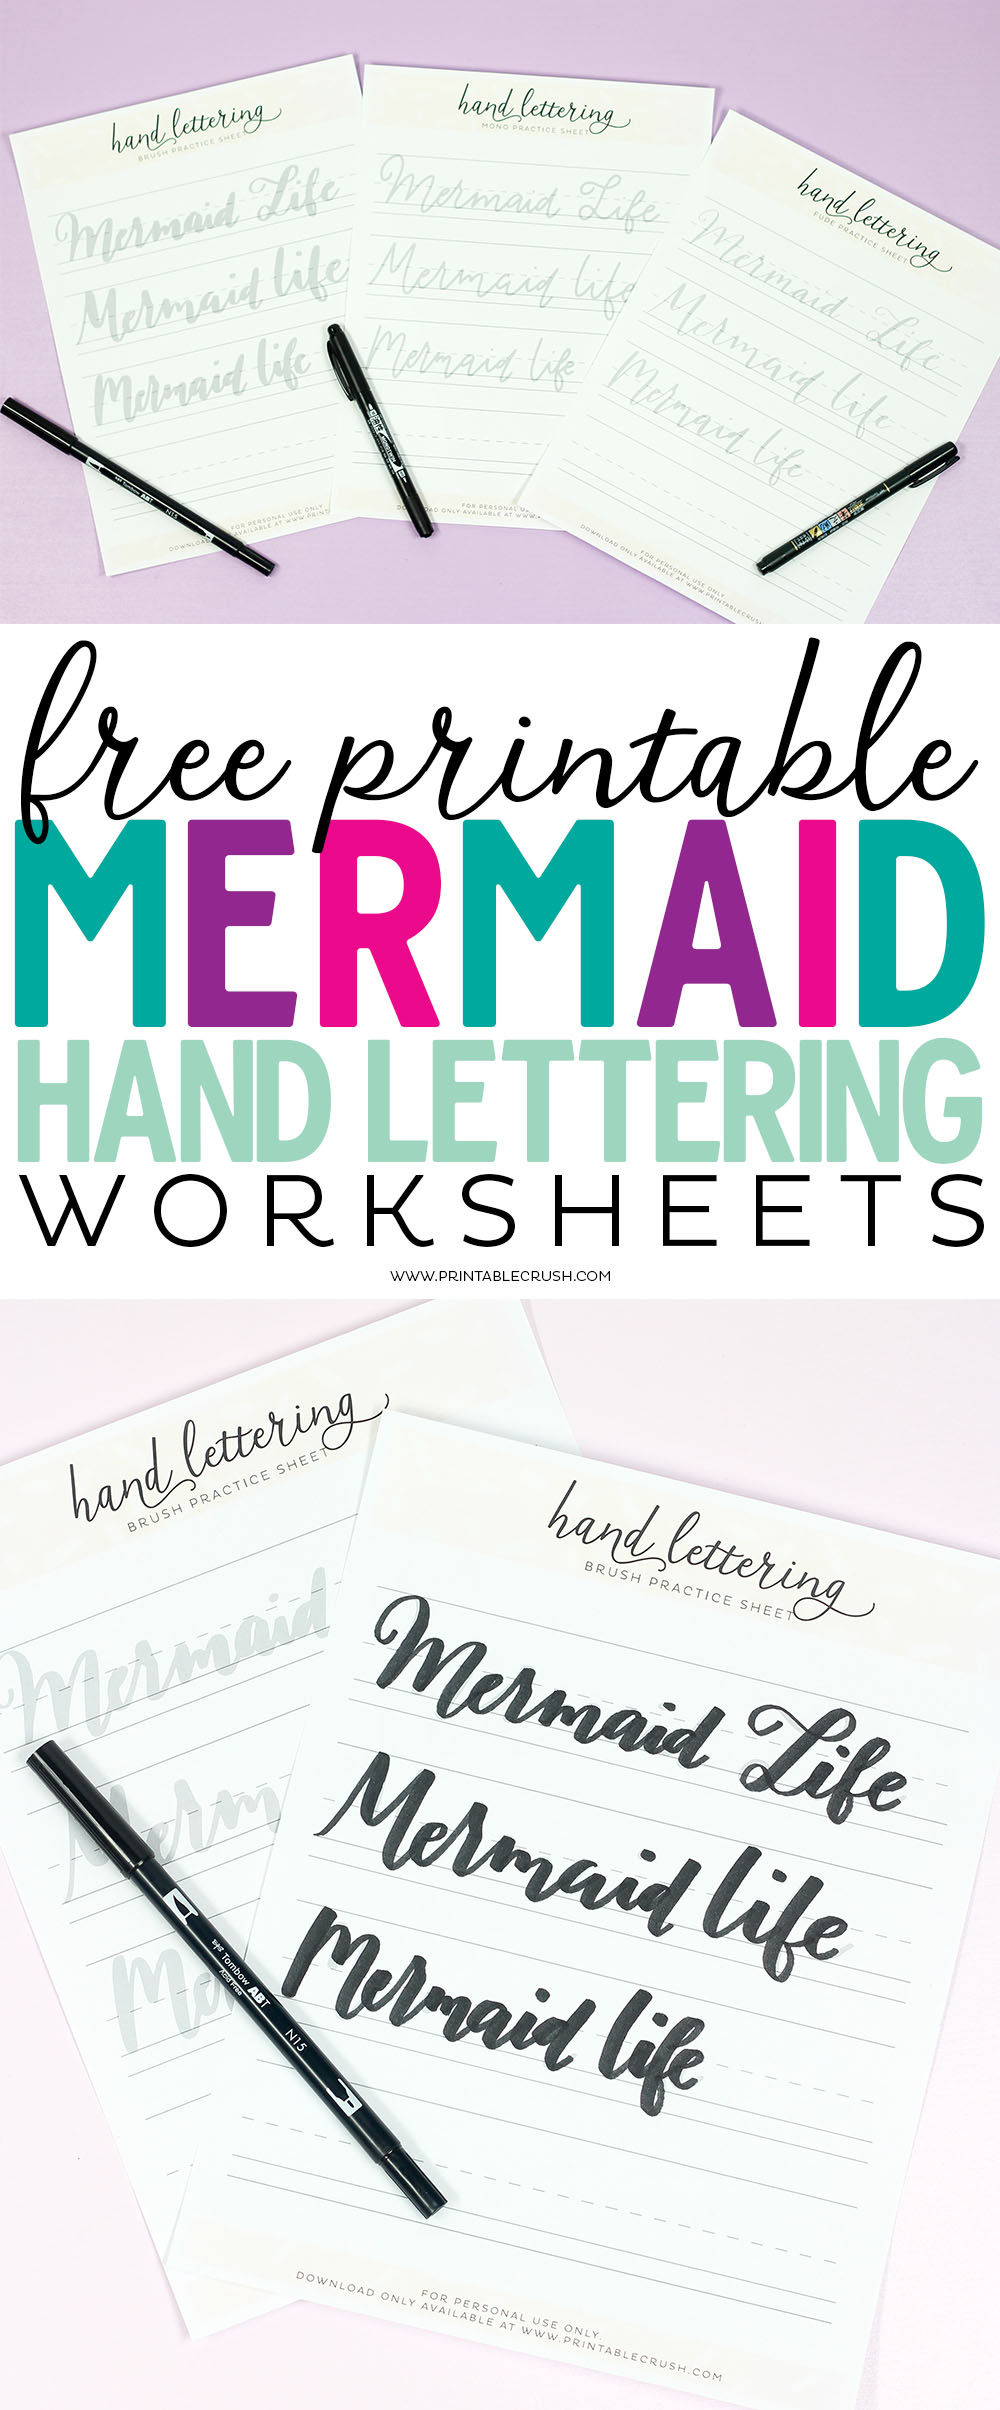 graphic about Printable Lettering titled No cost Printable Mermaid Hand Lettering Worksheets - Printable